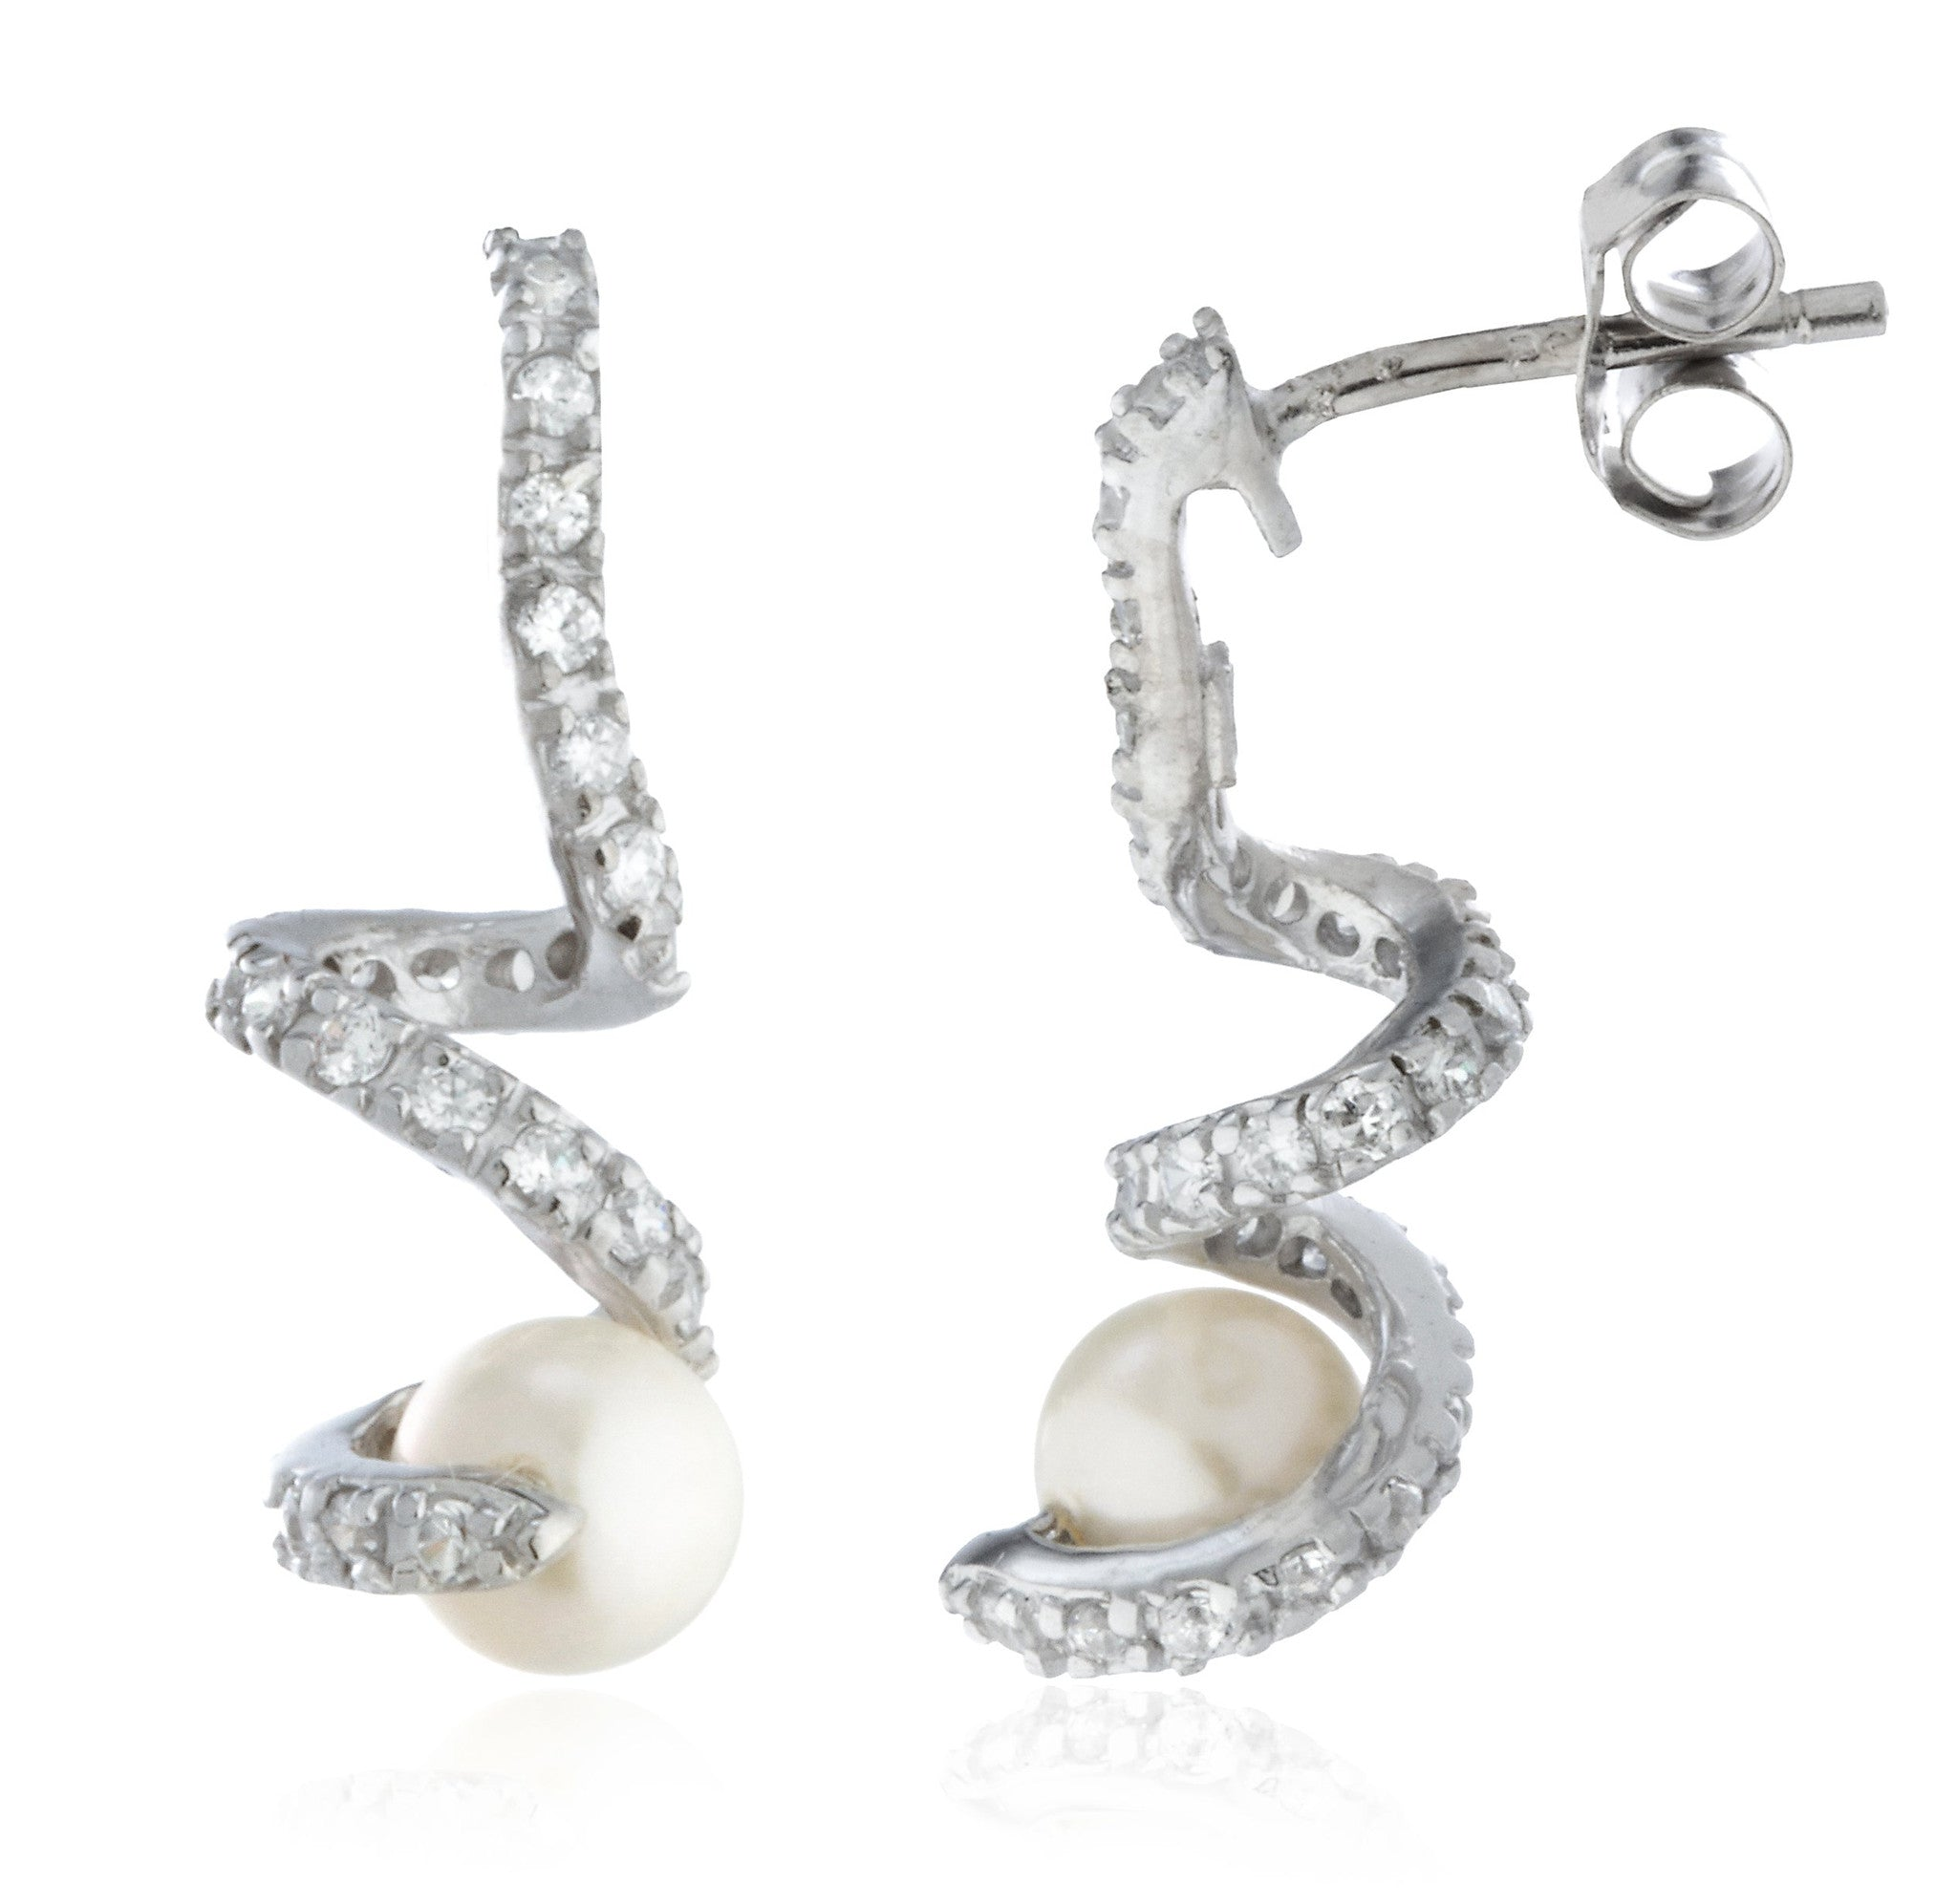 moonstone mini bar earrings pearl collections trust stud real gold